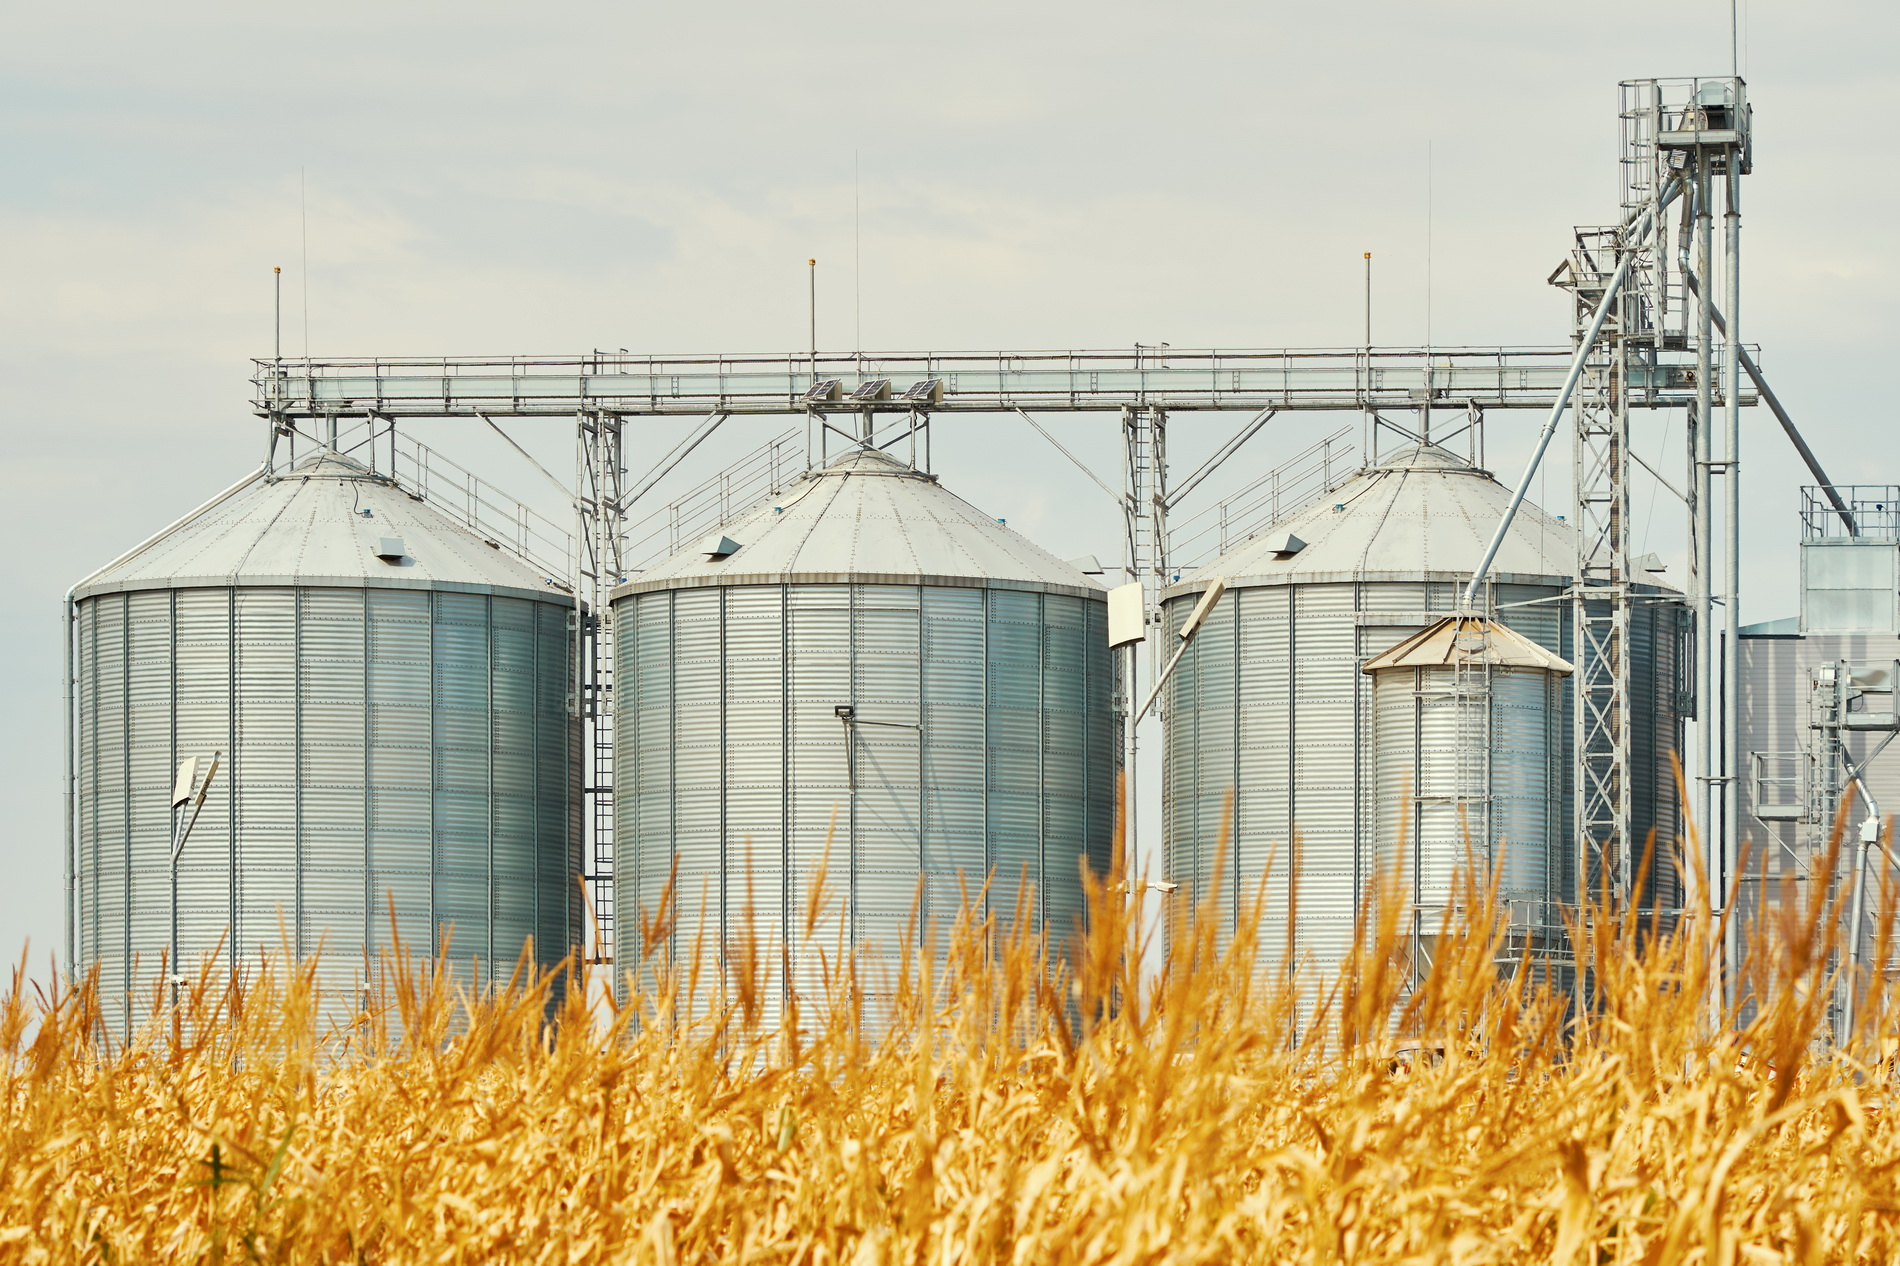 Grain prices, markets and analysis